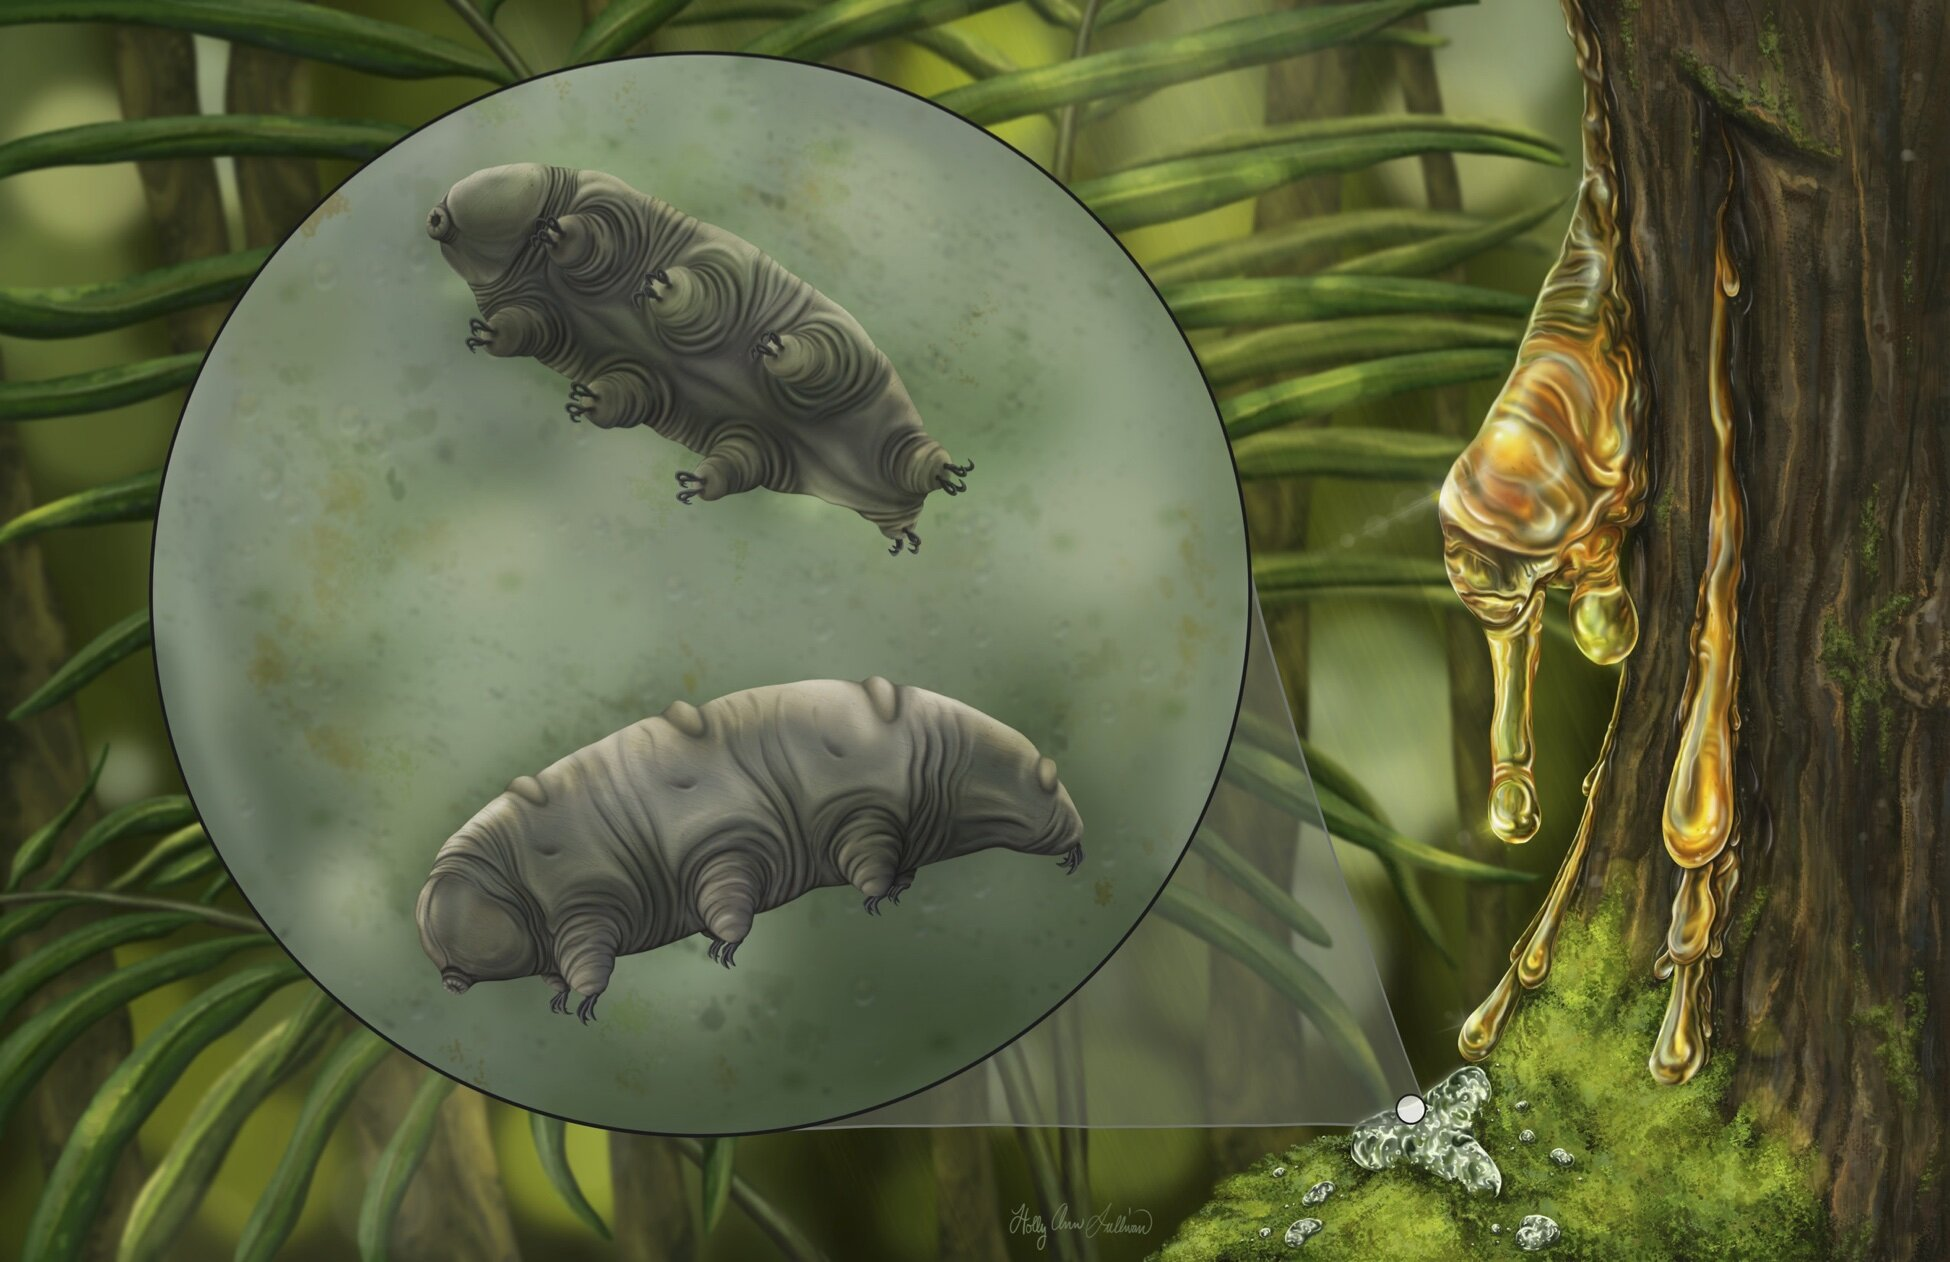 Researchers describe new tardigrade fossil found in 16 million year old Domincan amber